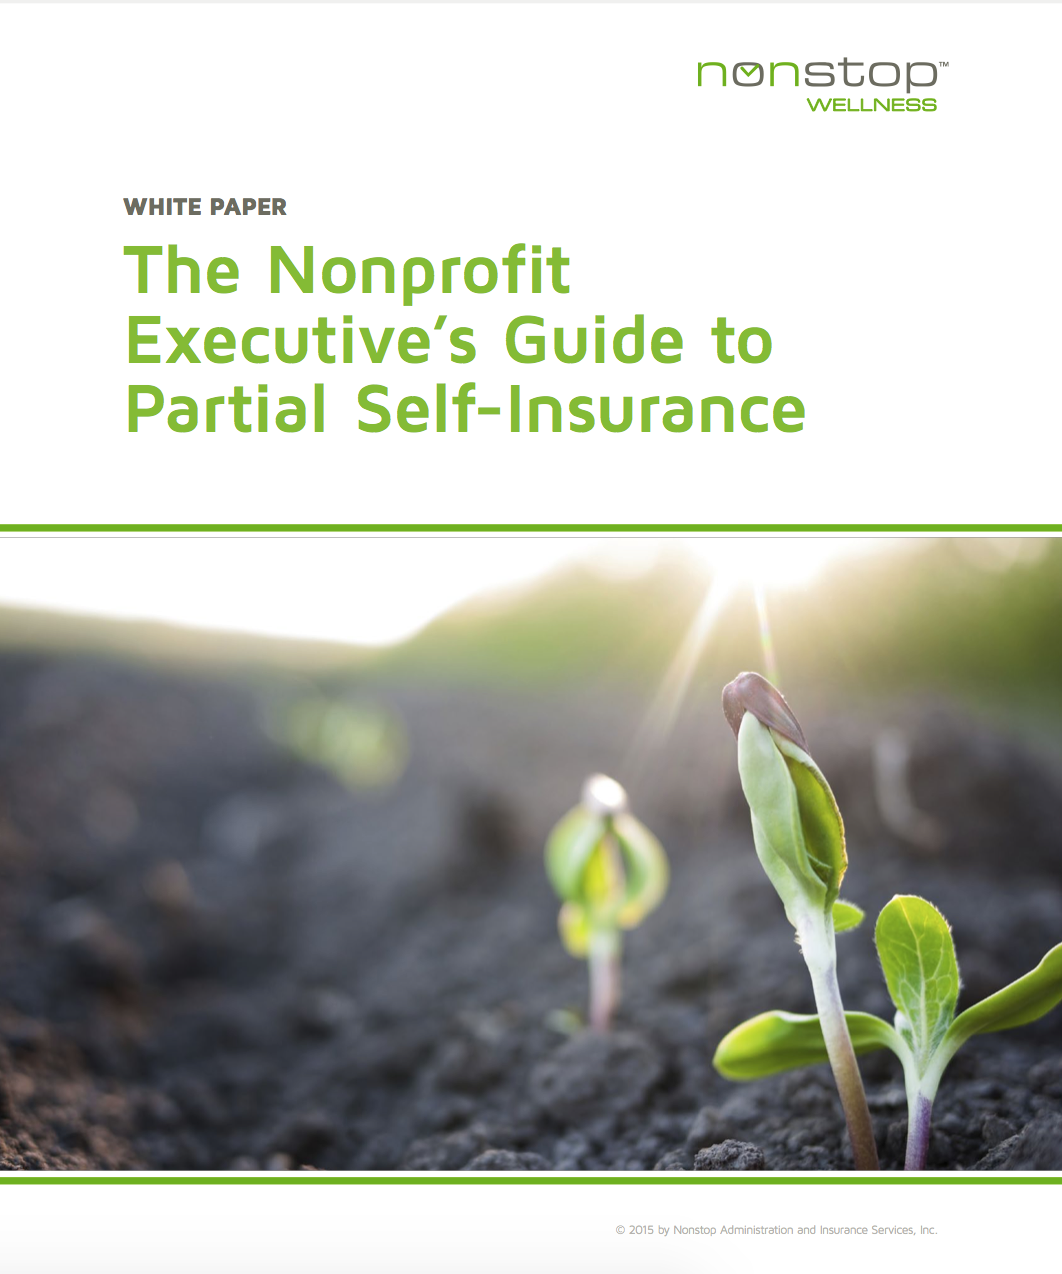 Nonprofit Executive's Guide to Partial Self-Insurance